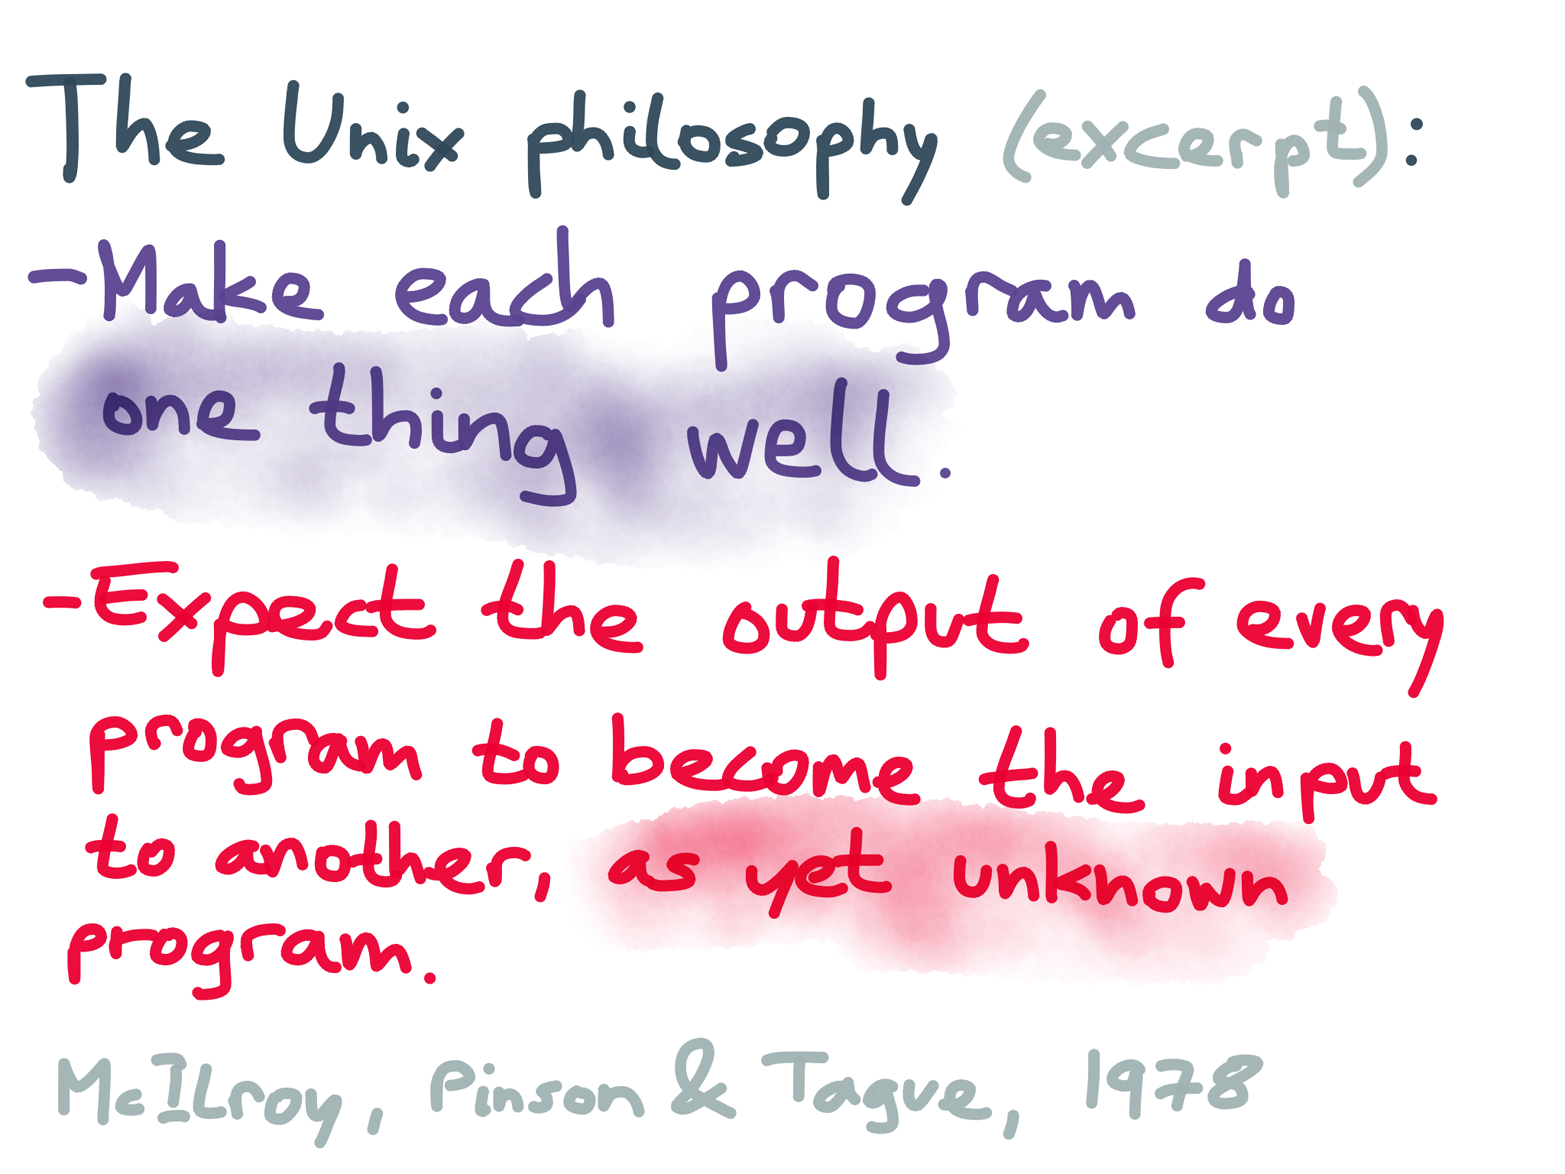 Two aspects of the Unix philosophy, as articulated by some of its designers in 1978.